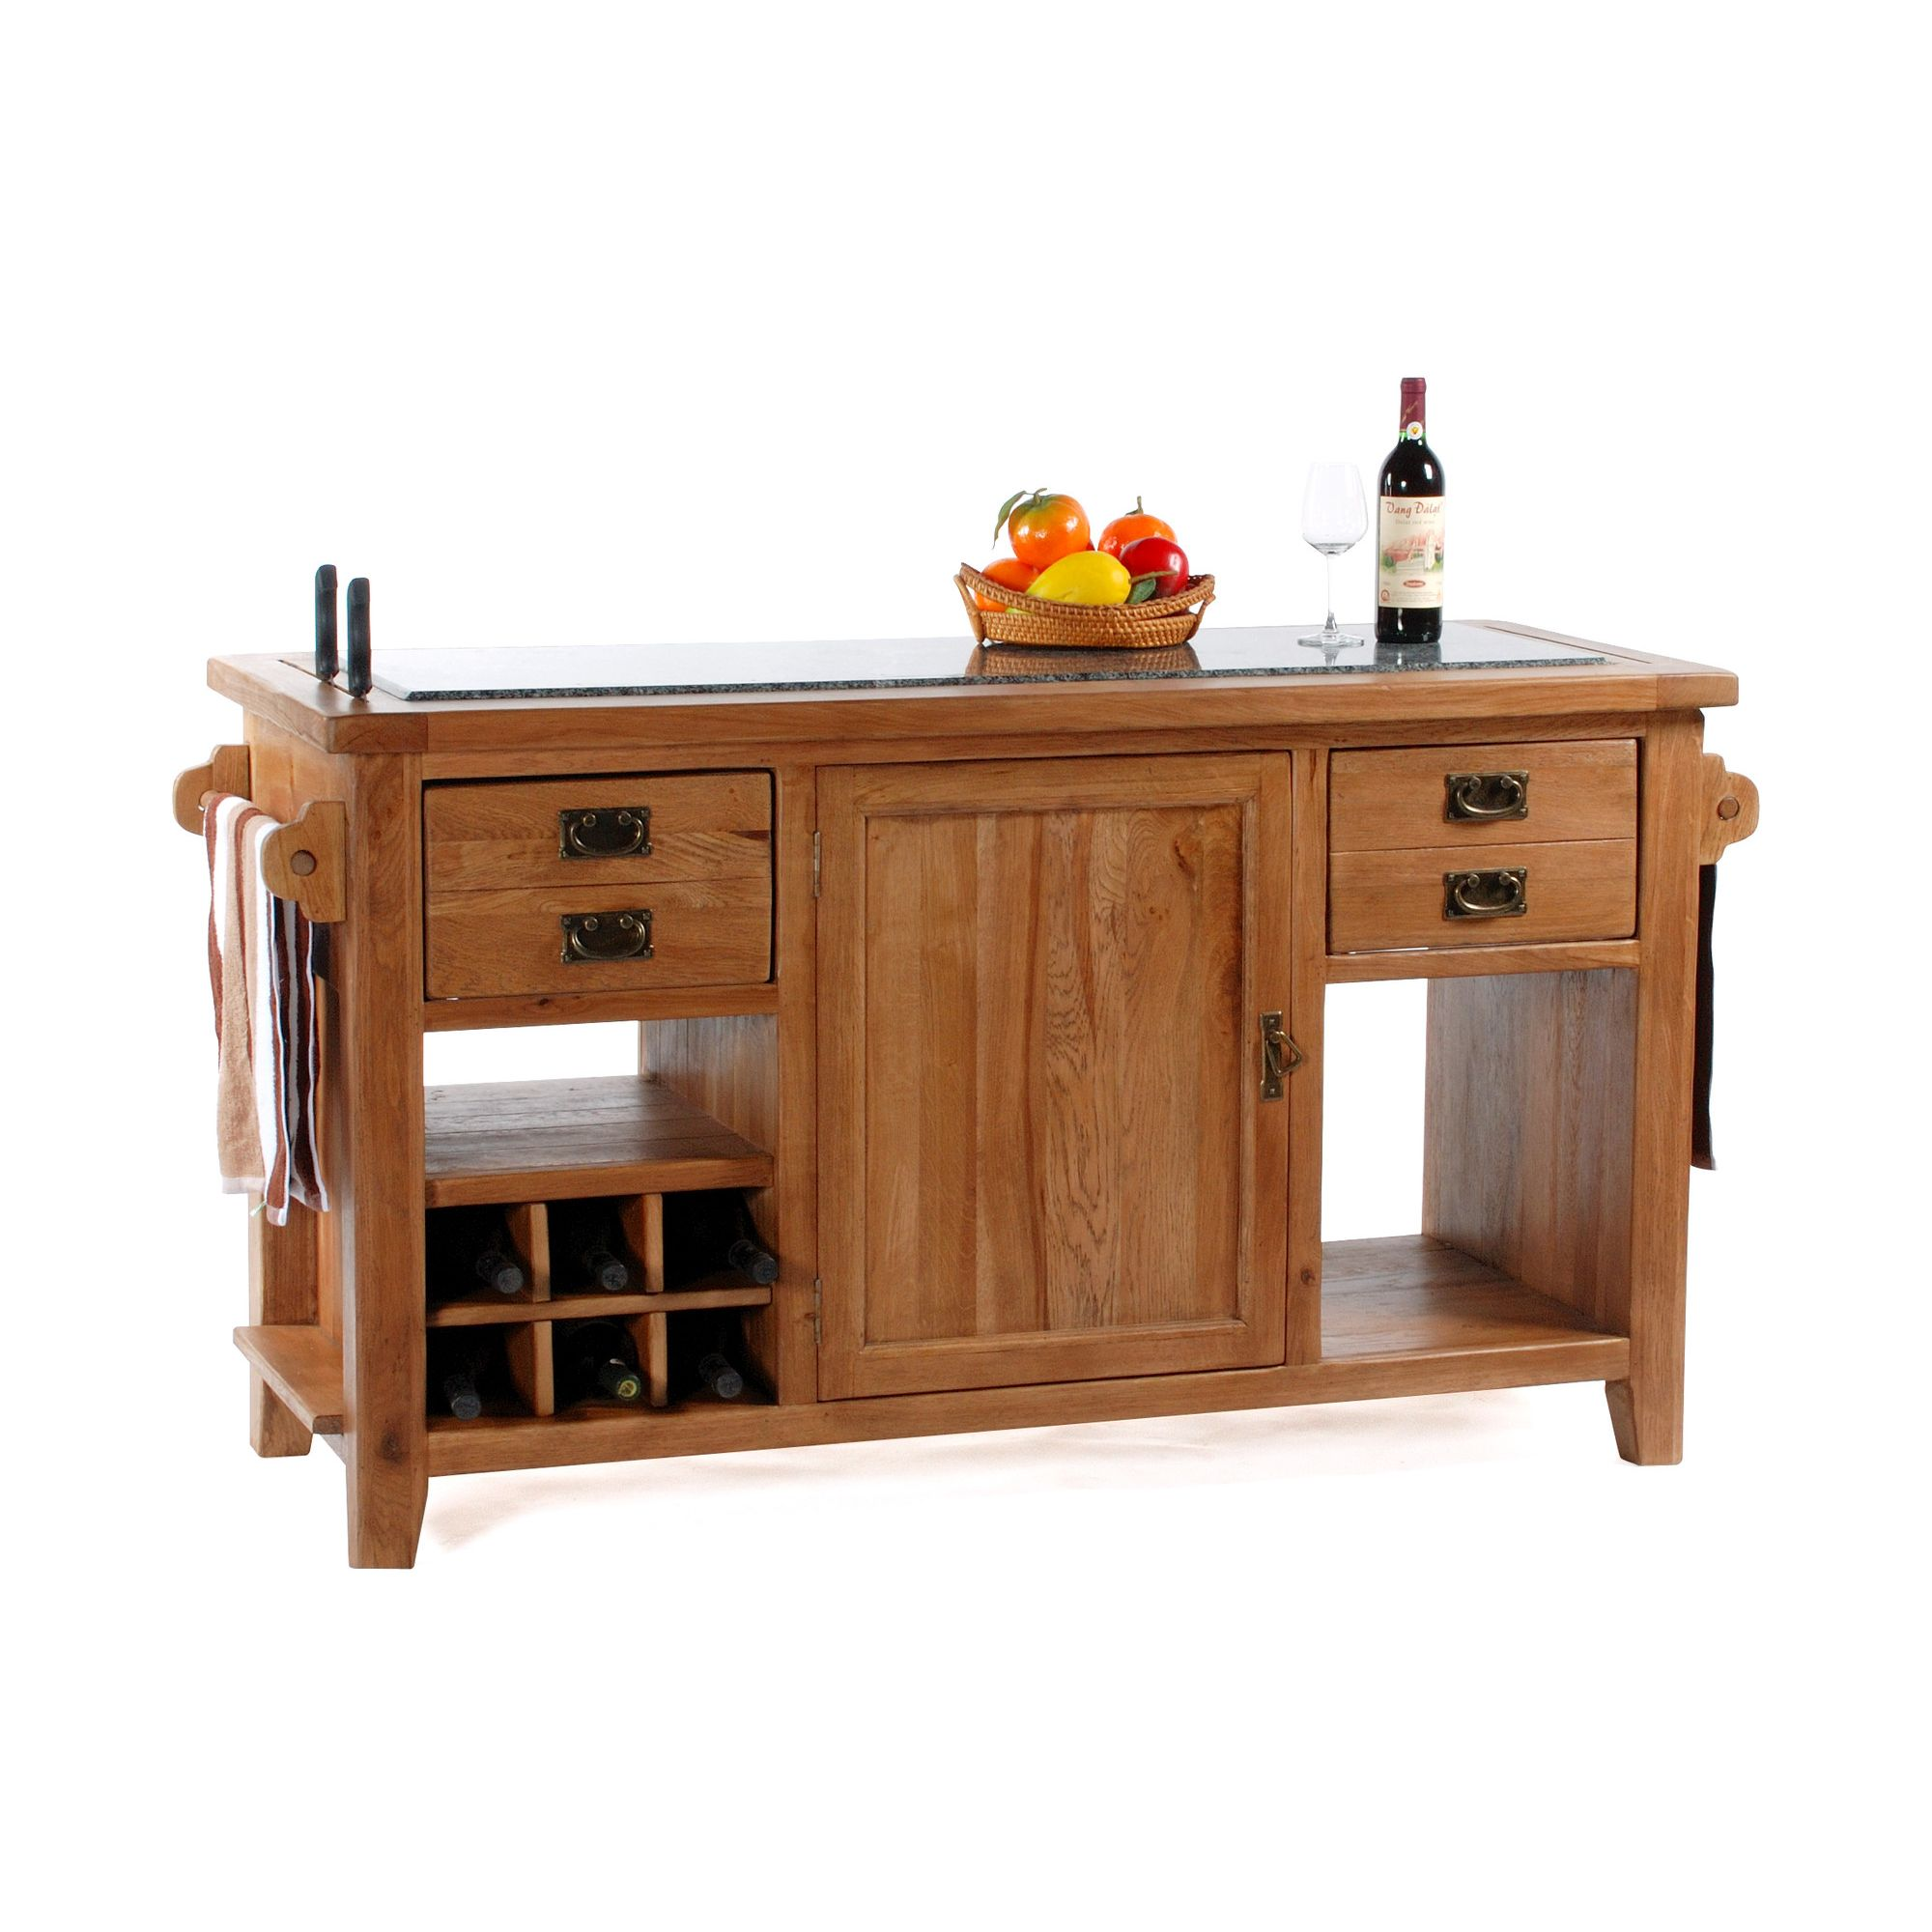 Wiseaction Florence Large Granite Top Kitchen Island at Tesco Direct